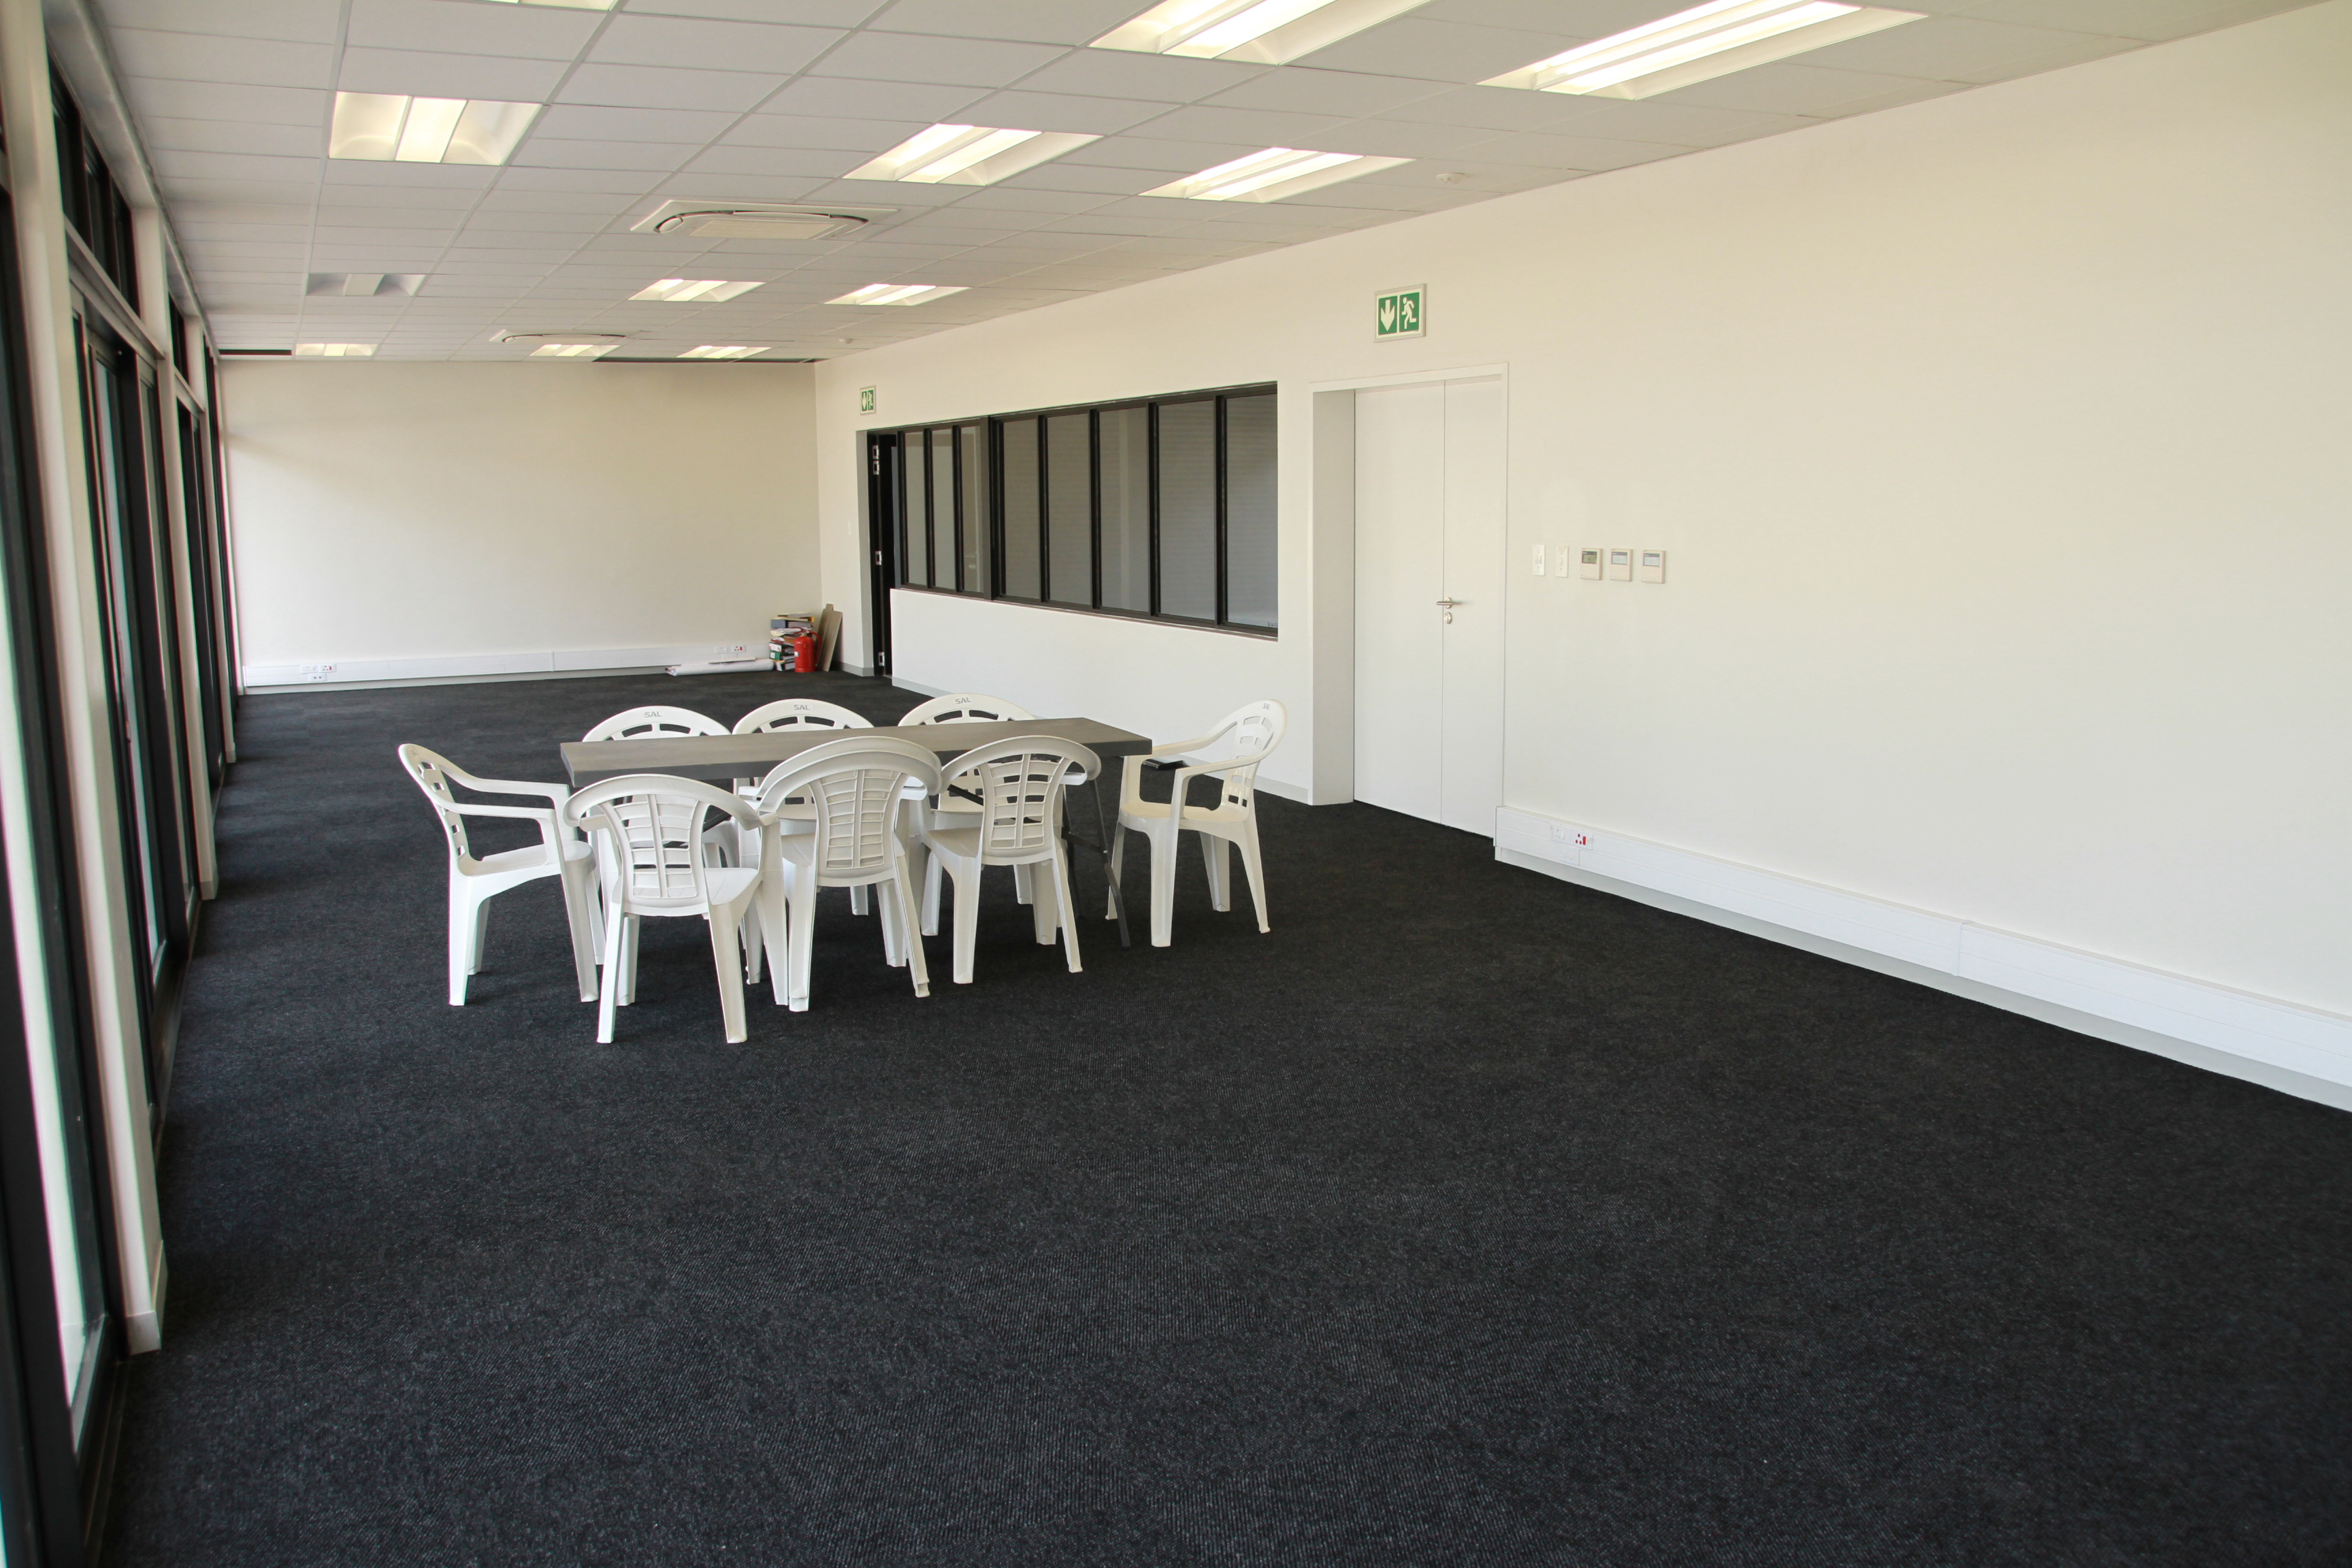 Lecture and display room area.